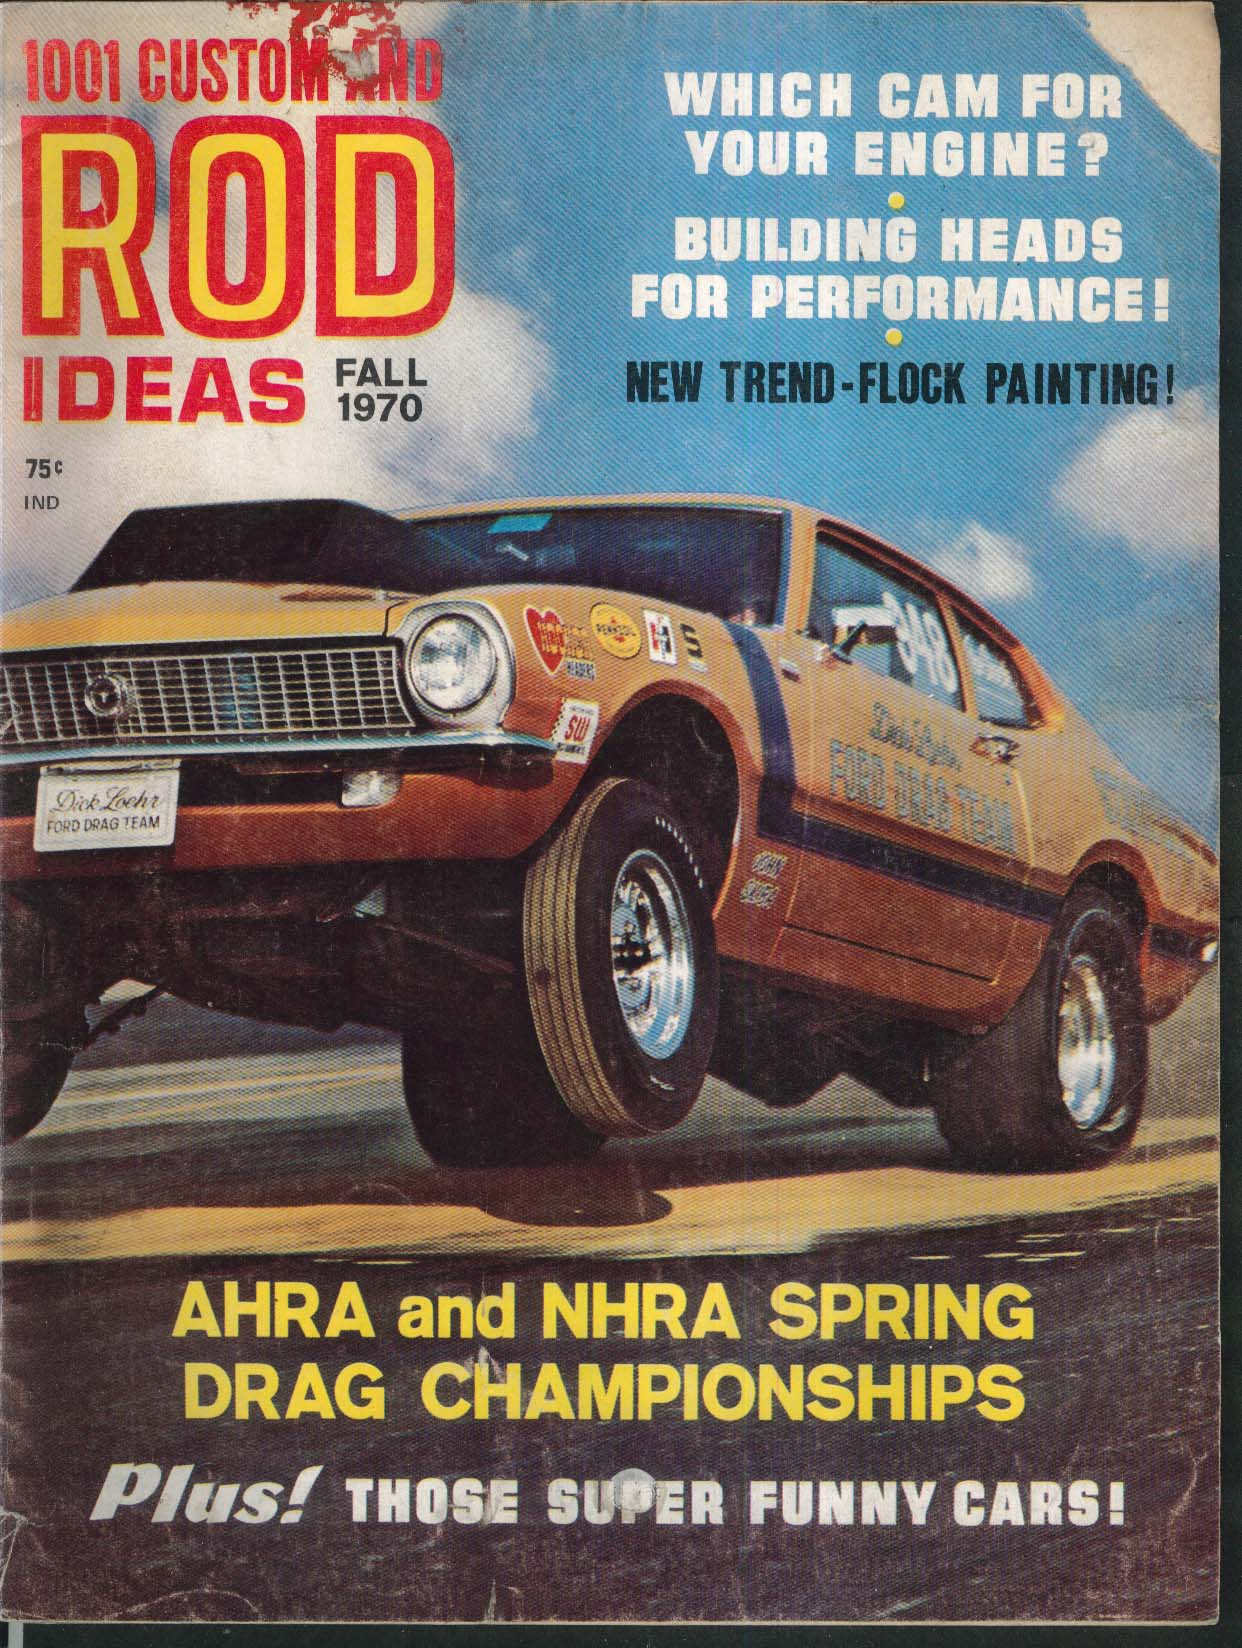 1001 CUSTOM & ROD IDEAS AHRA NHRA Spring Drag Baja VW Dick Loehr 4-4-2 Fall 1970